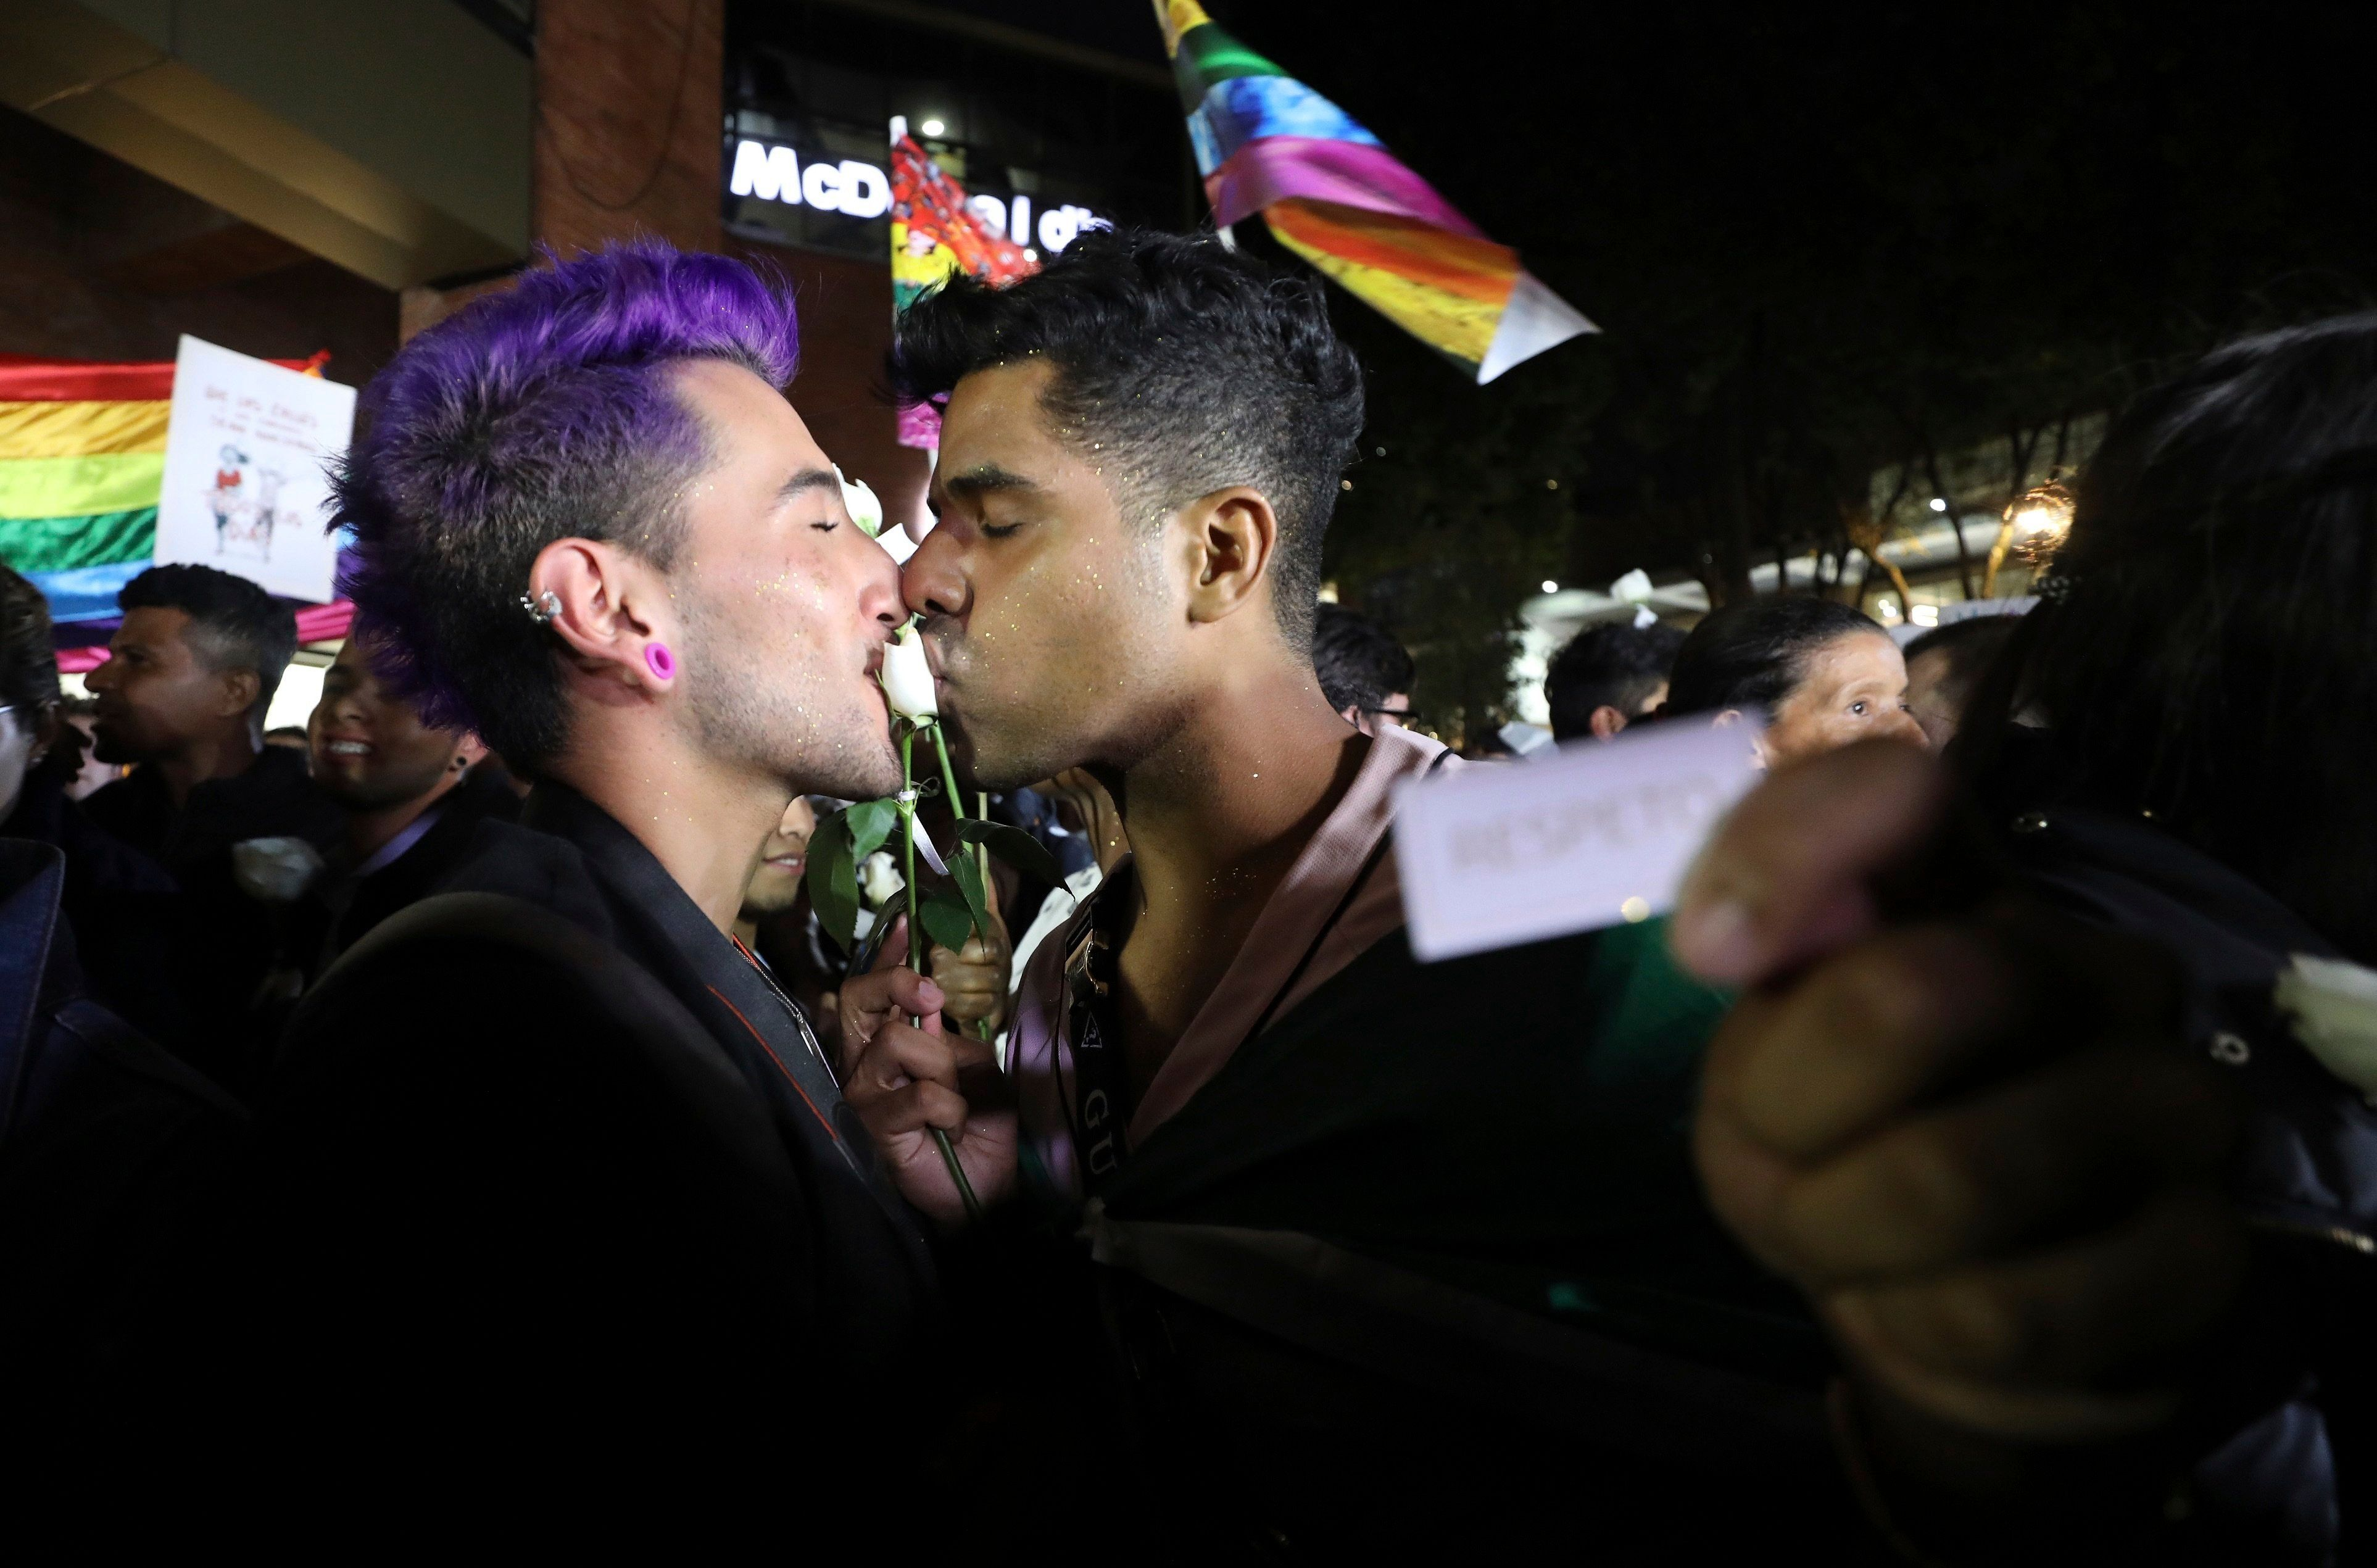 Colombians Stage 'Kiss-A-Thon' In Support Of LGBTQ